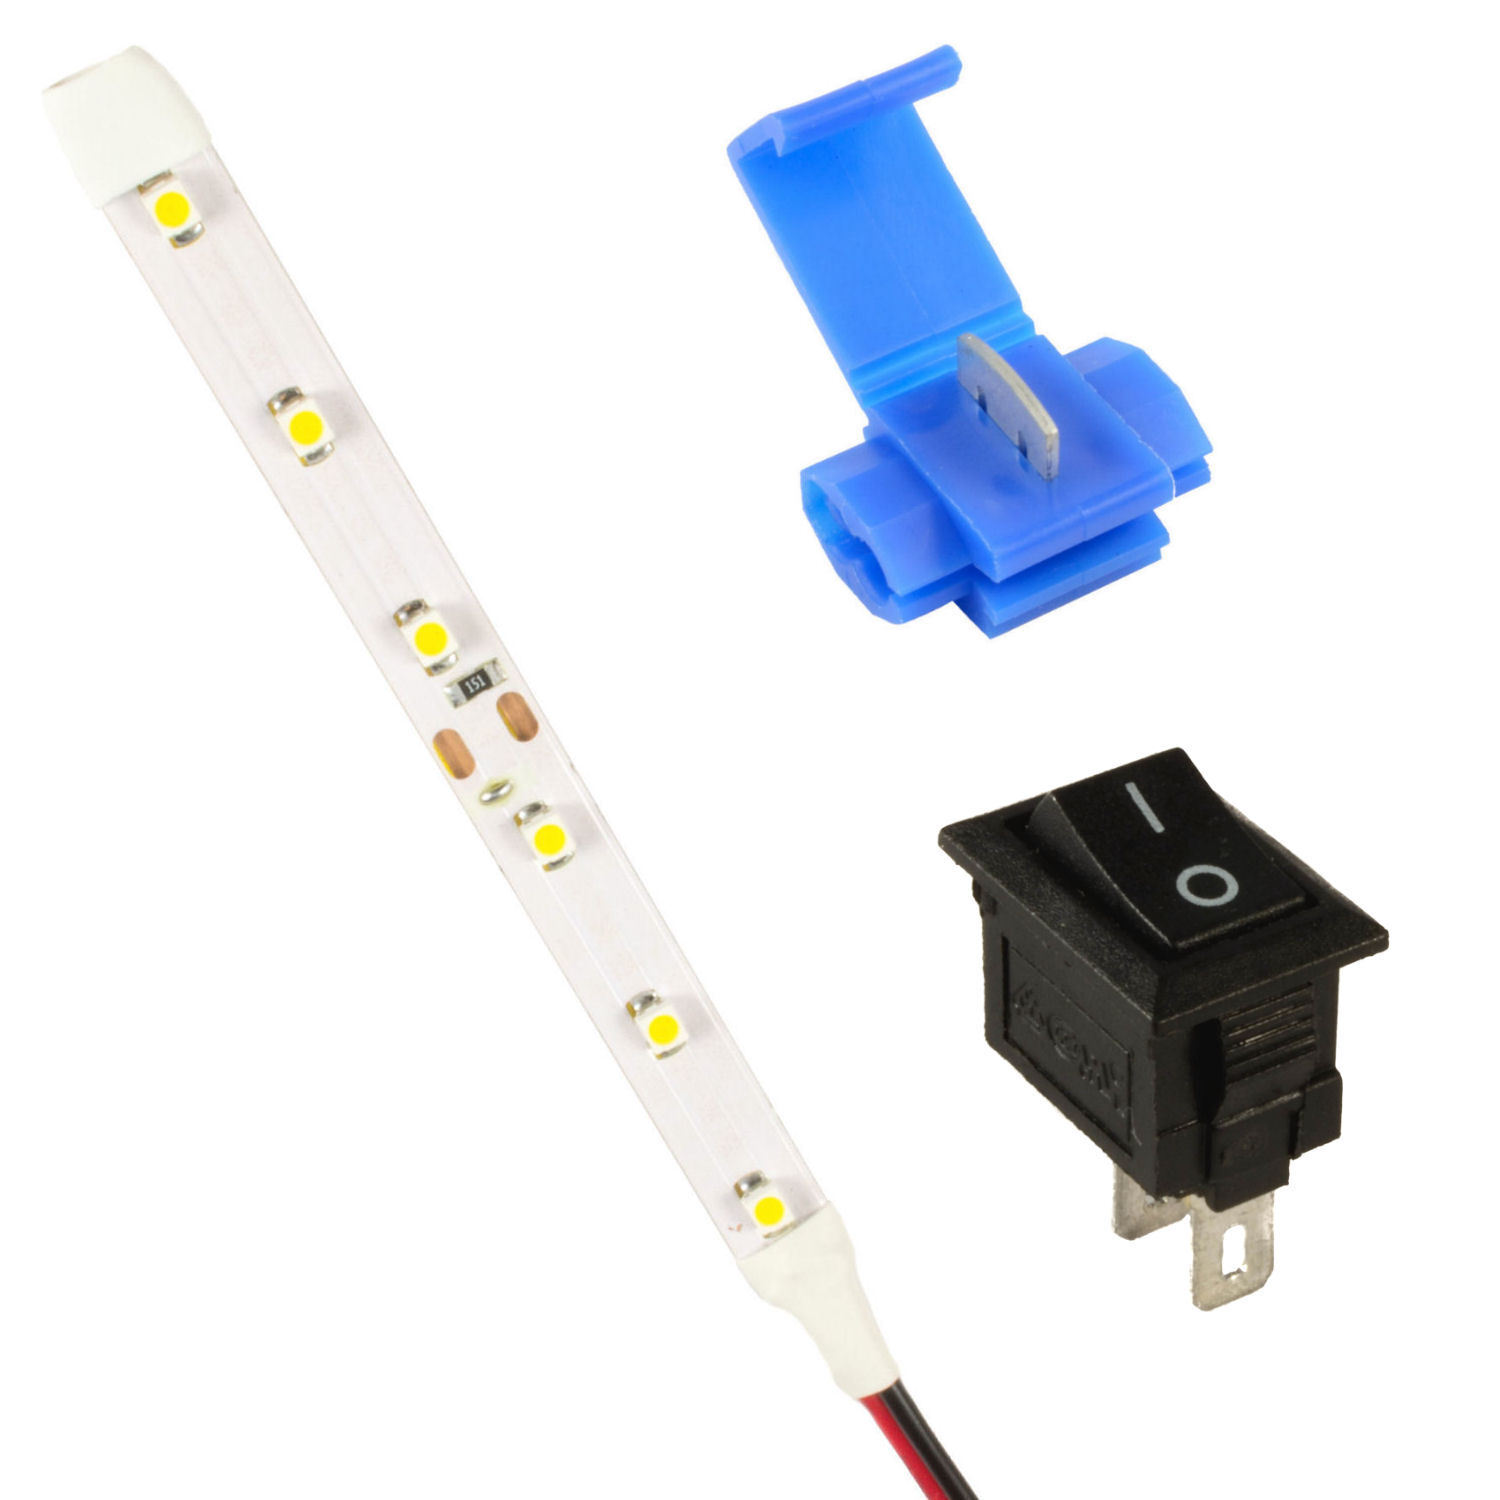 Mount All Flashing LED Colours Multi-Purpose 12V 5mm Switch PP3 Connector